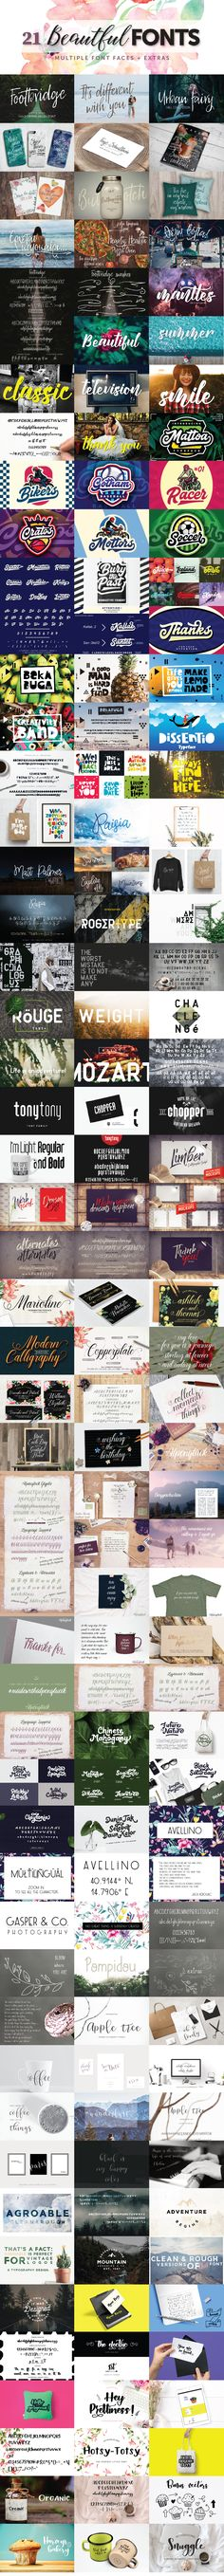 21 Beautiful Fonts This collection contains that lovely look you've been searching for. These days, a high-quality, beautiful font can be hard to find. But today is your lucky day! Each and every fon